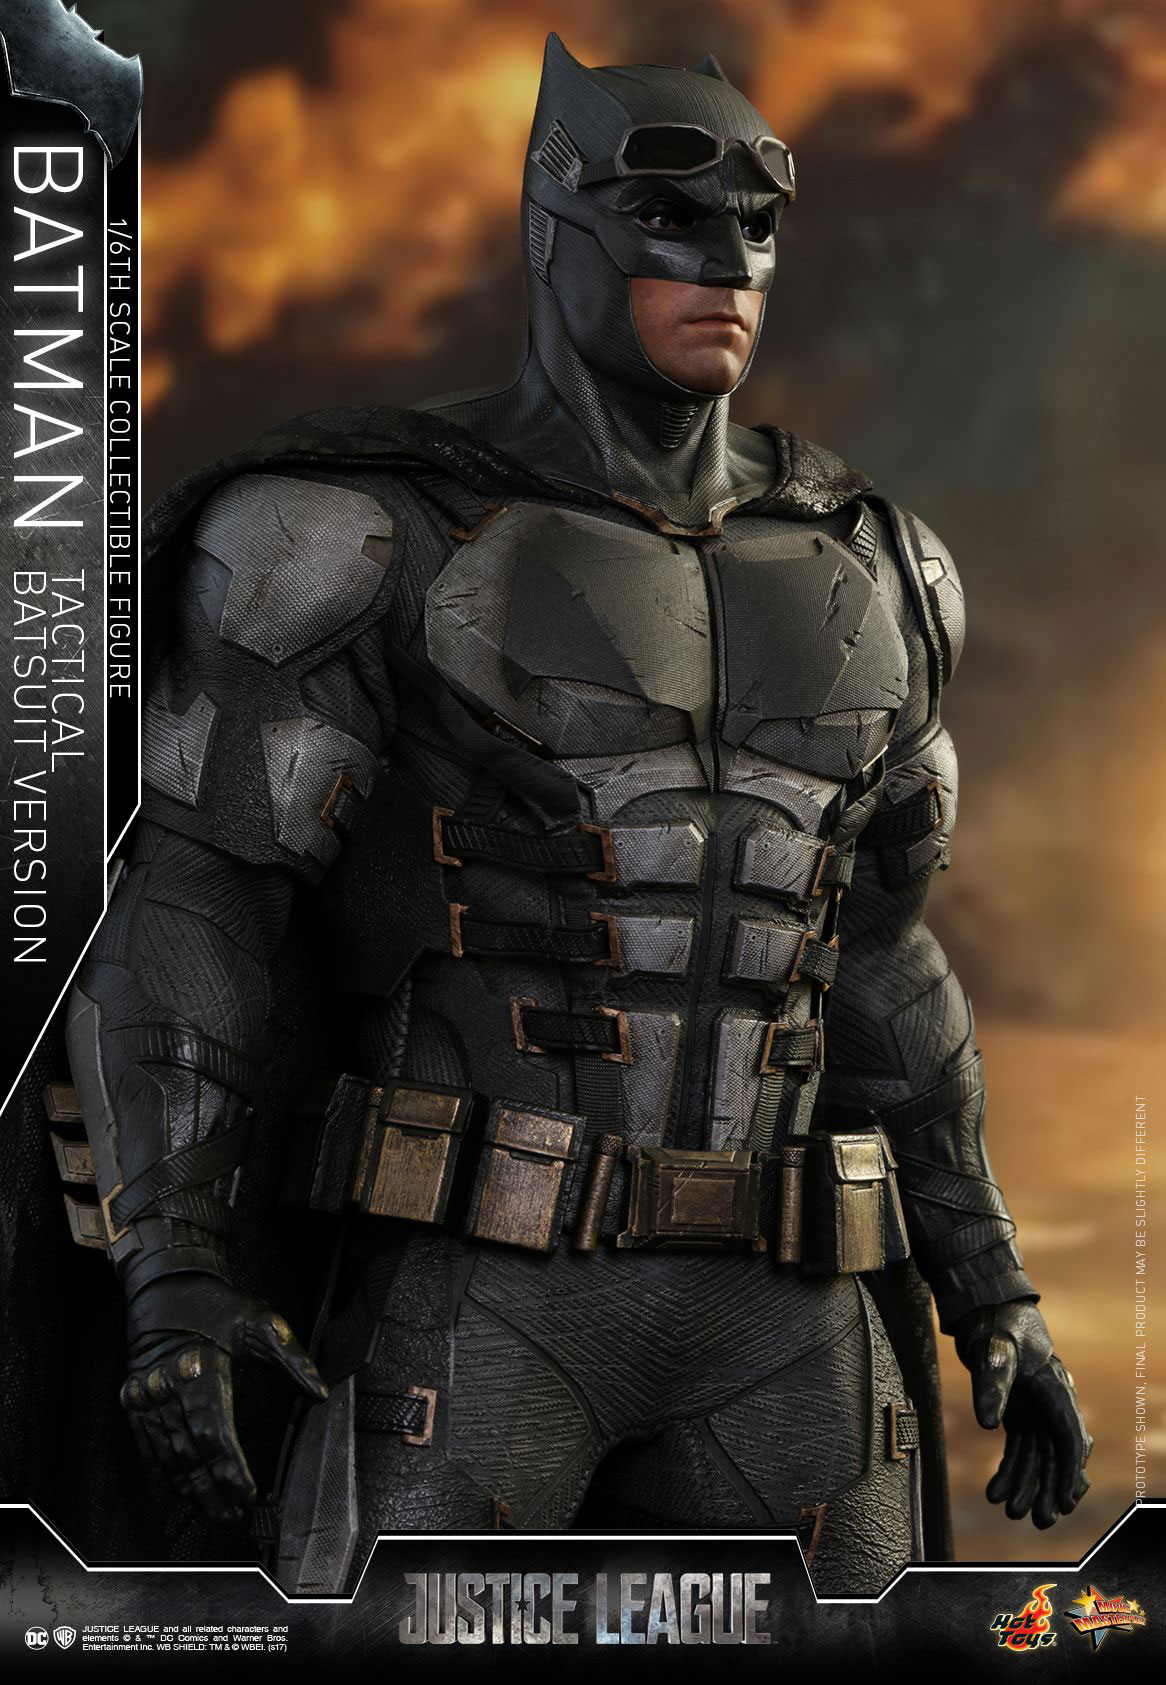 justice-league-batman-tactical-suit-hot-toys-figure-9